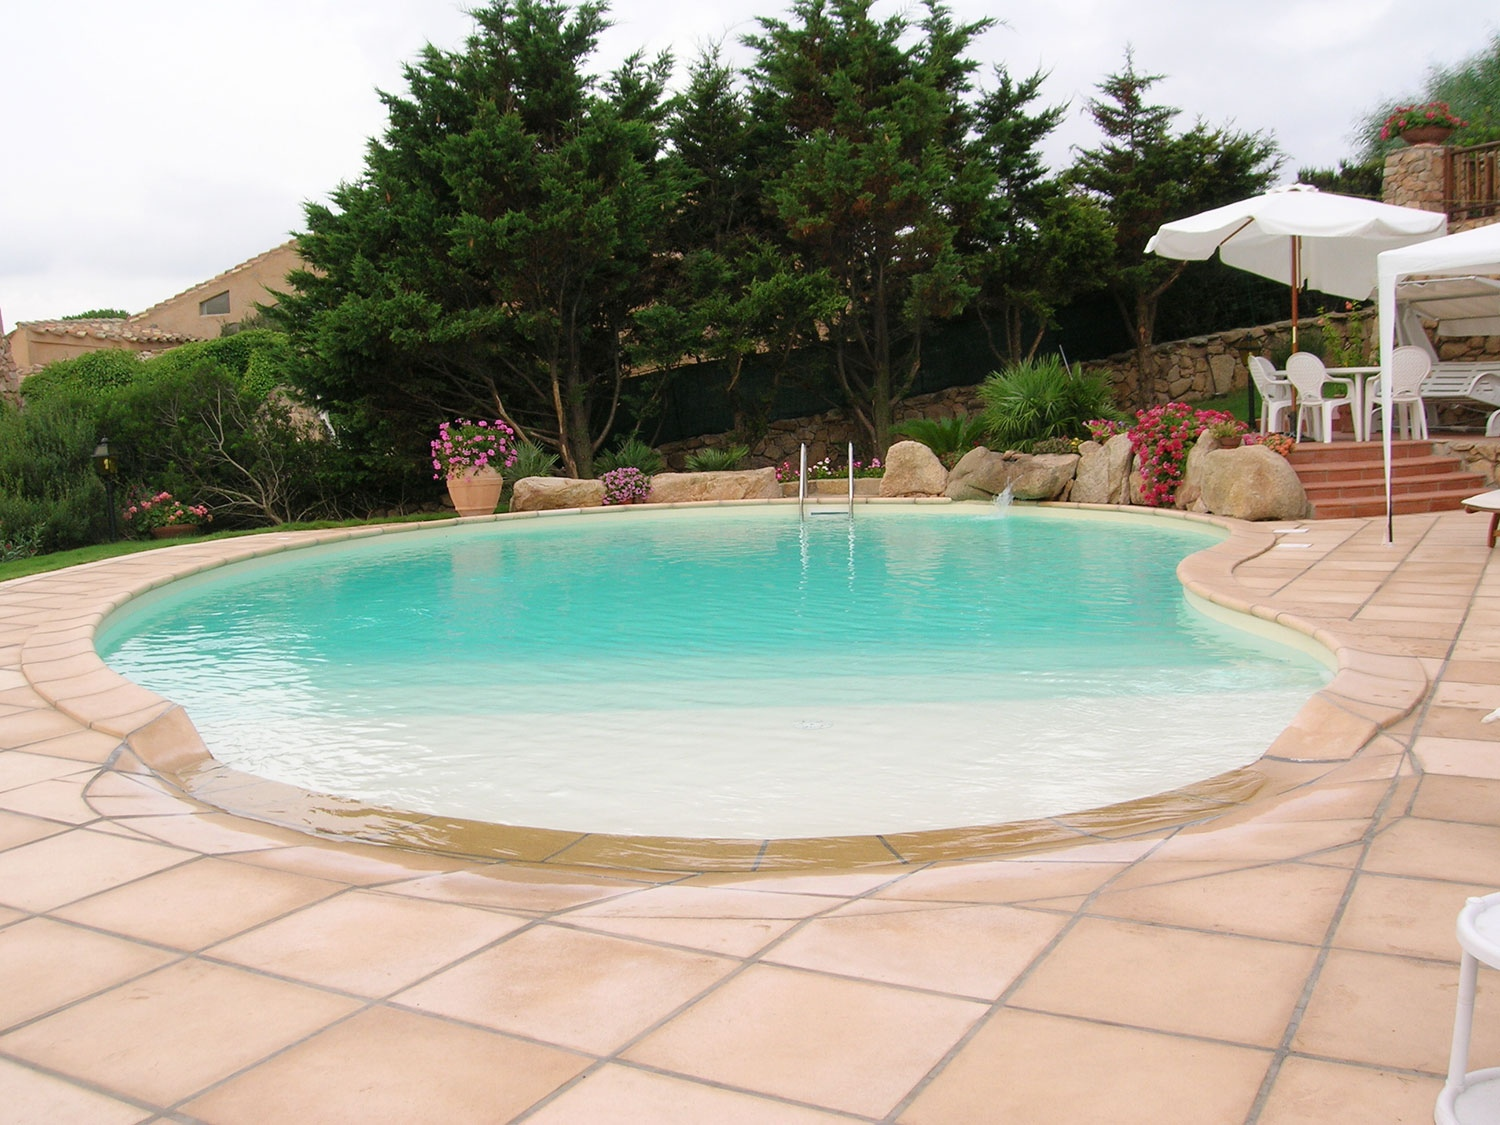 Piscine interrate piccole dispongono di migliori - Piscine piccole interrate ...